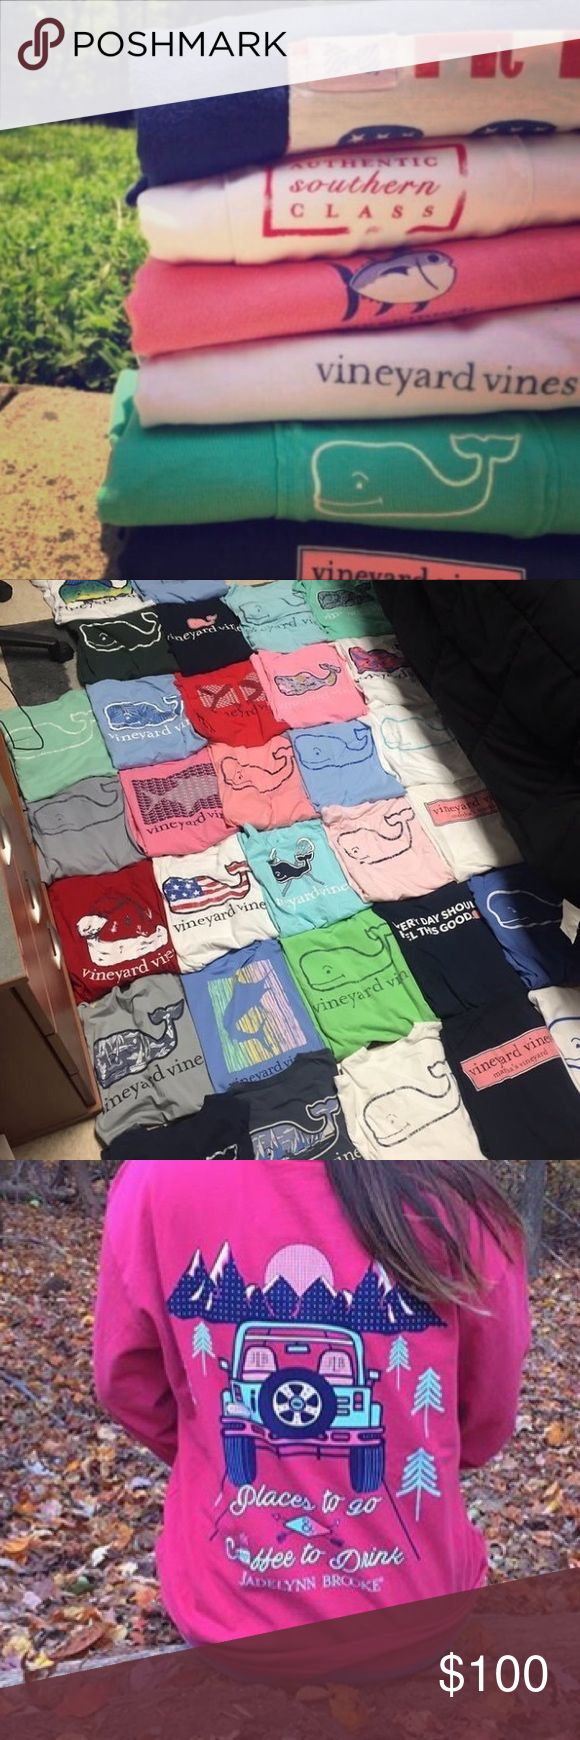 ISO southern/ preppy t shirts and long sleeves Looking for brands like vineyard vines, southern shirt company, simply souther, jadelynn brooke, etc. Vineyard Vines Tops Tees - Short Sleeve